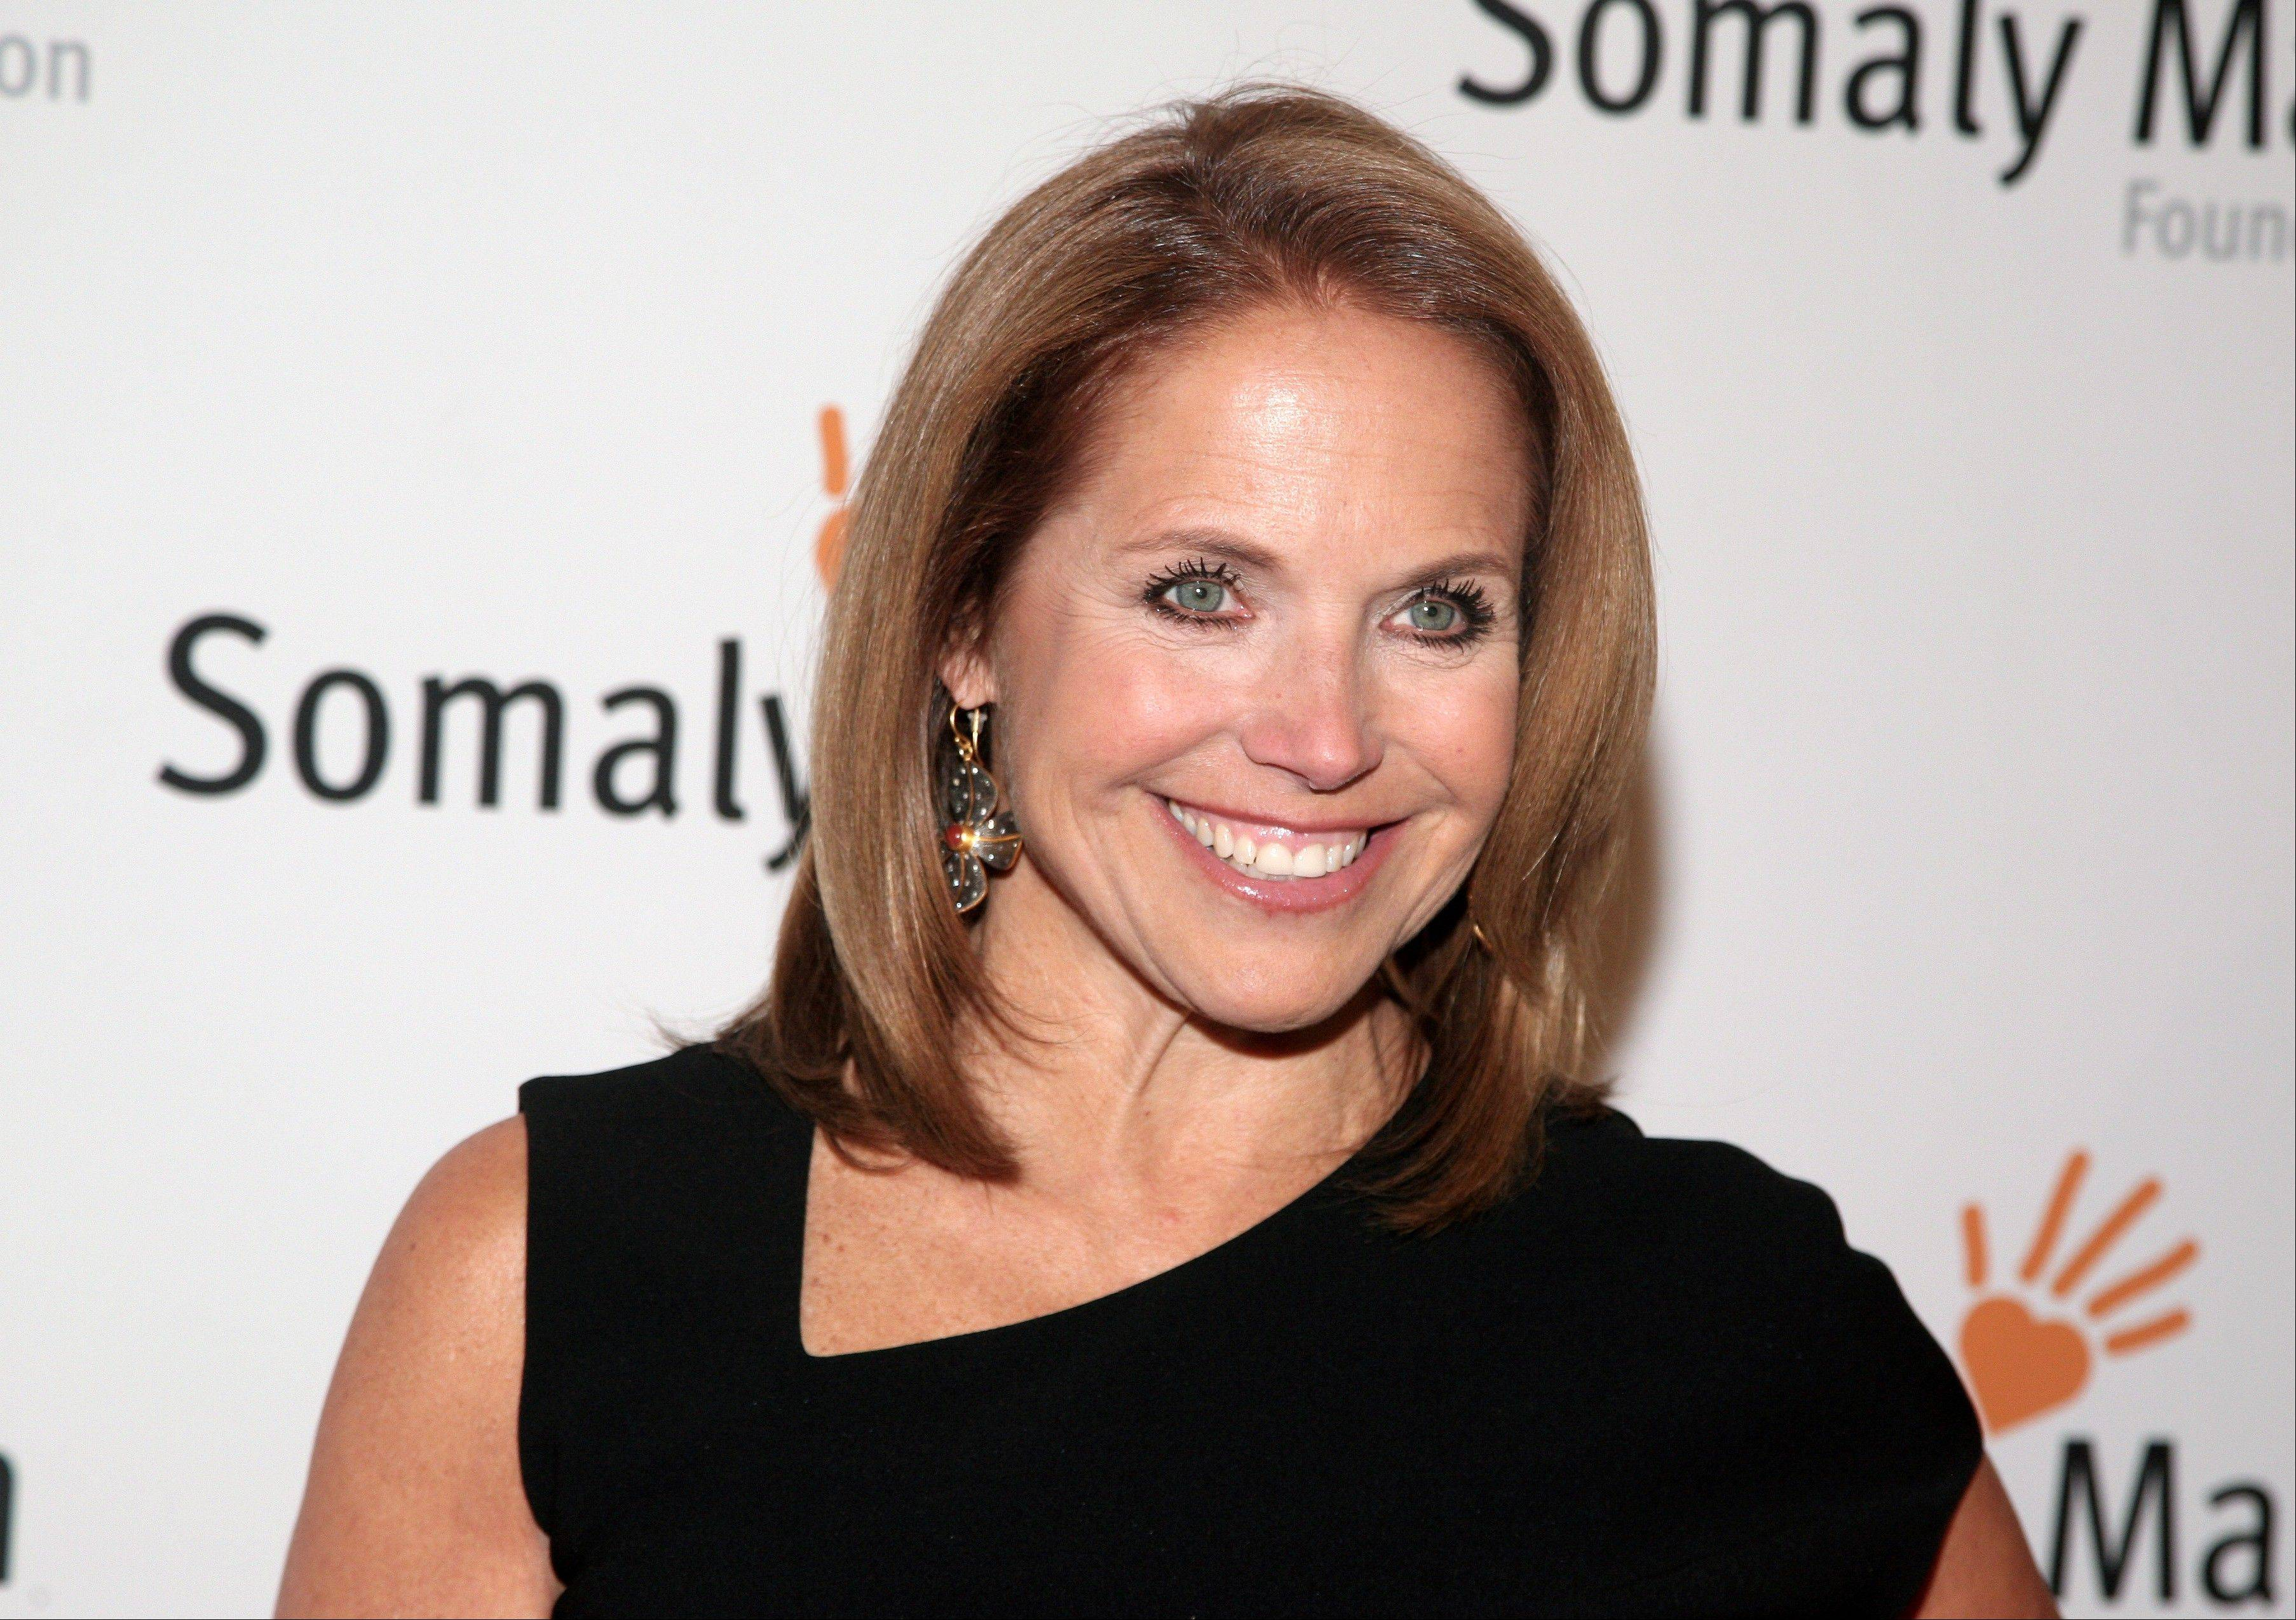 Katie Couric is joining Yahoo to anchor a news program for the Internet company as it tries to expand its audience and sell more advertising.